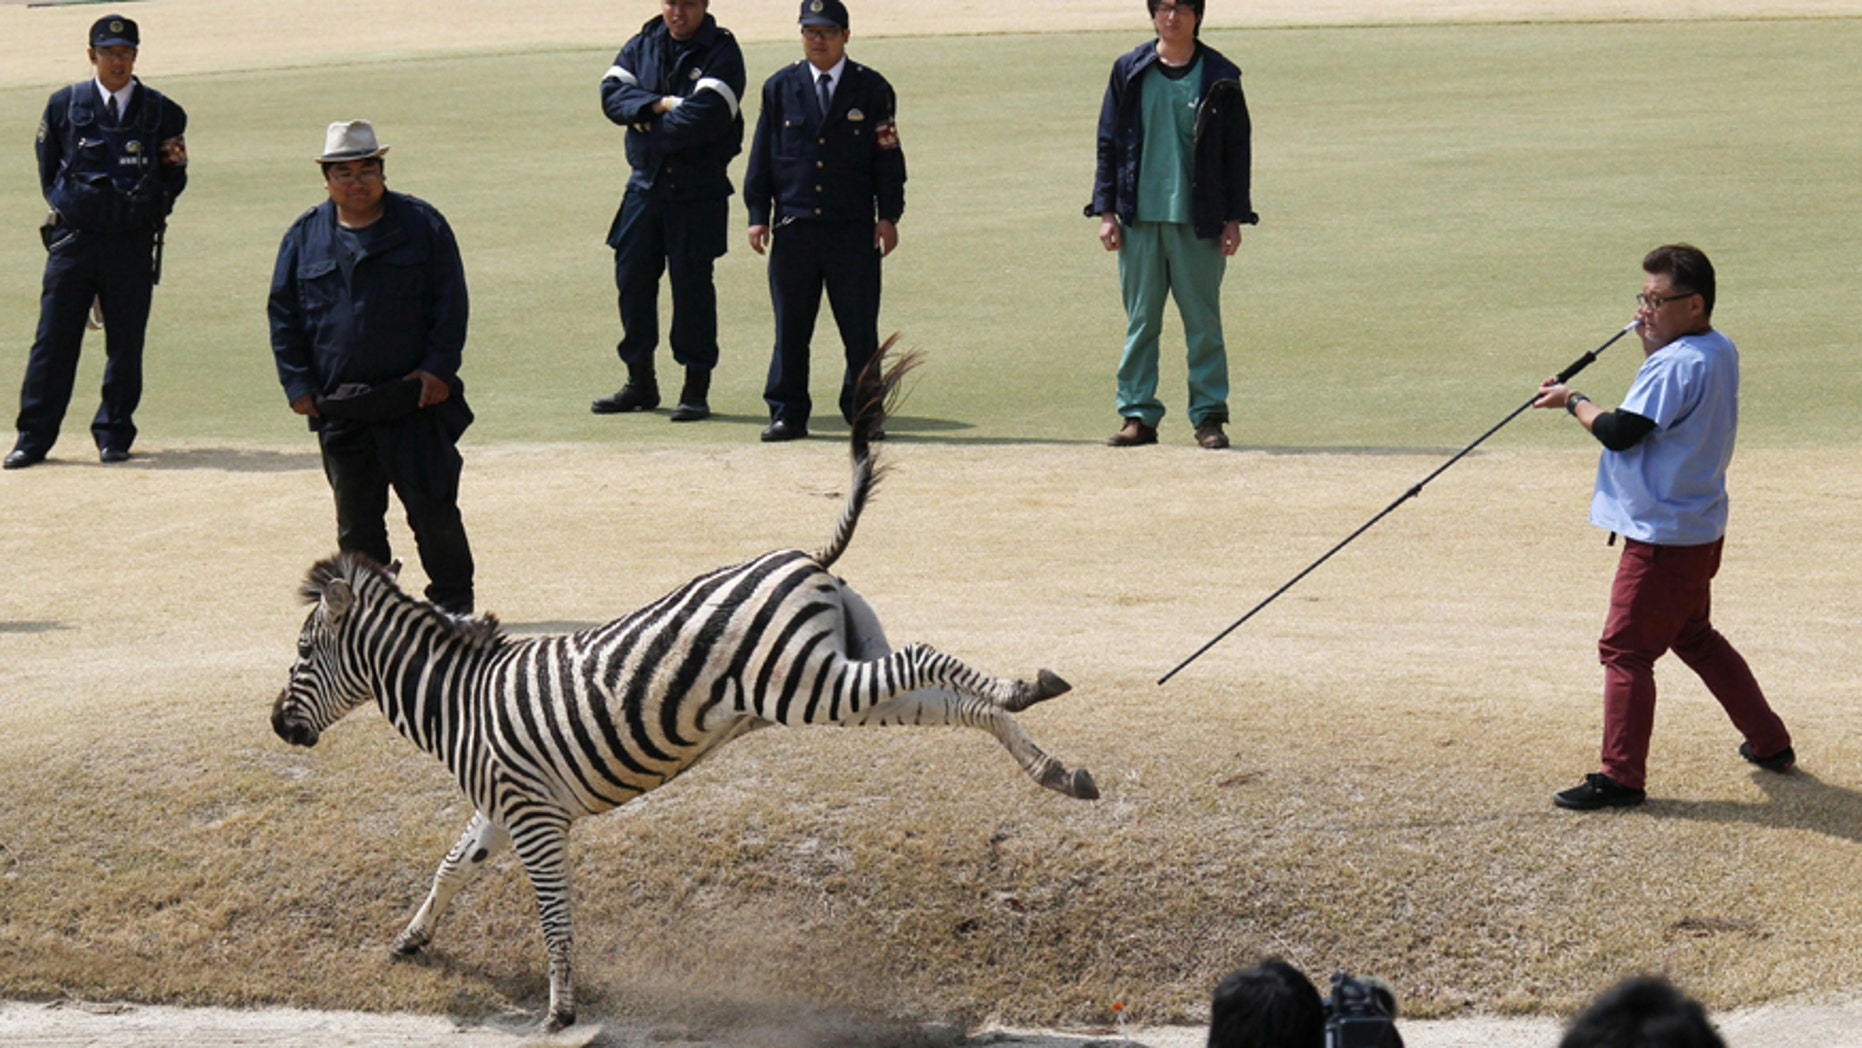 March 23, 2016: An animal doctor uses a tranquilizer dart to capture an zebra on a golf course in Toki, Gifu prefecture, central Japan.